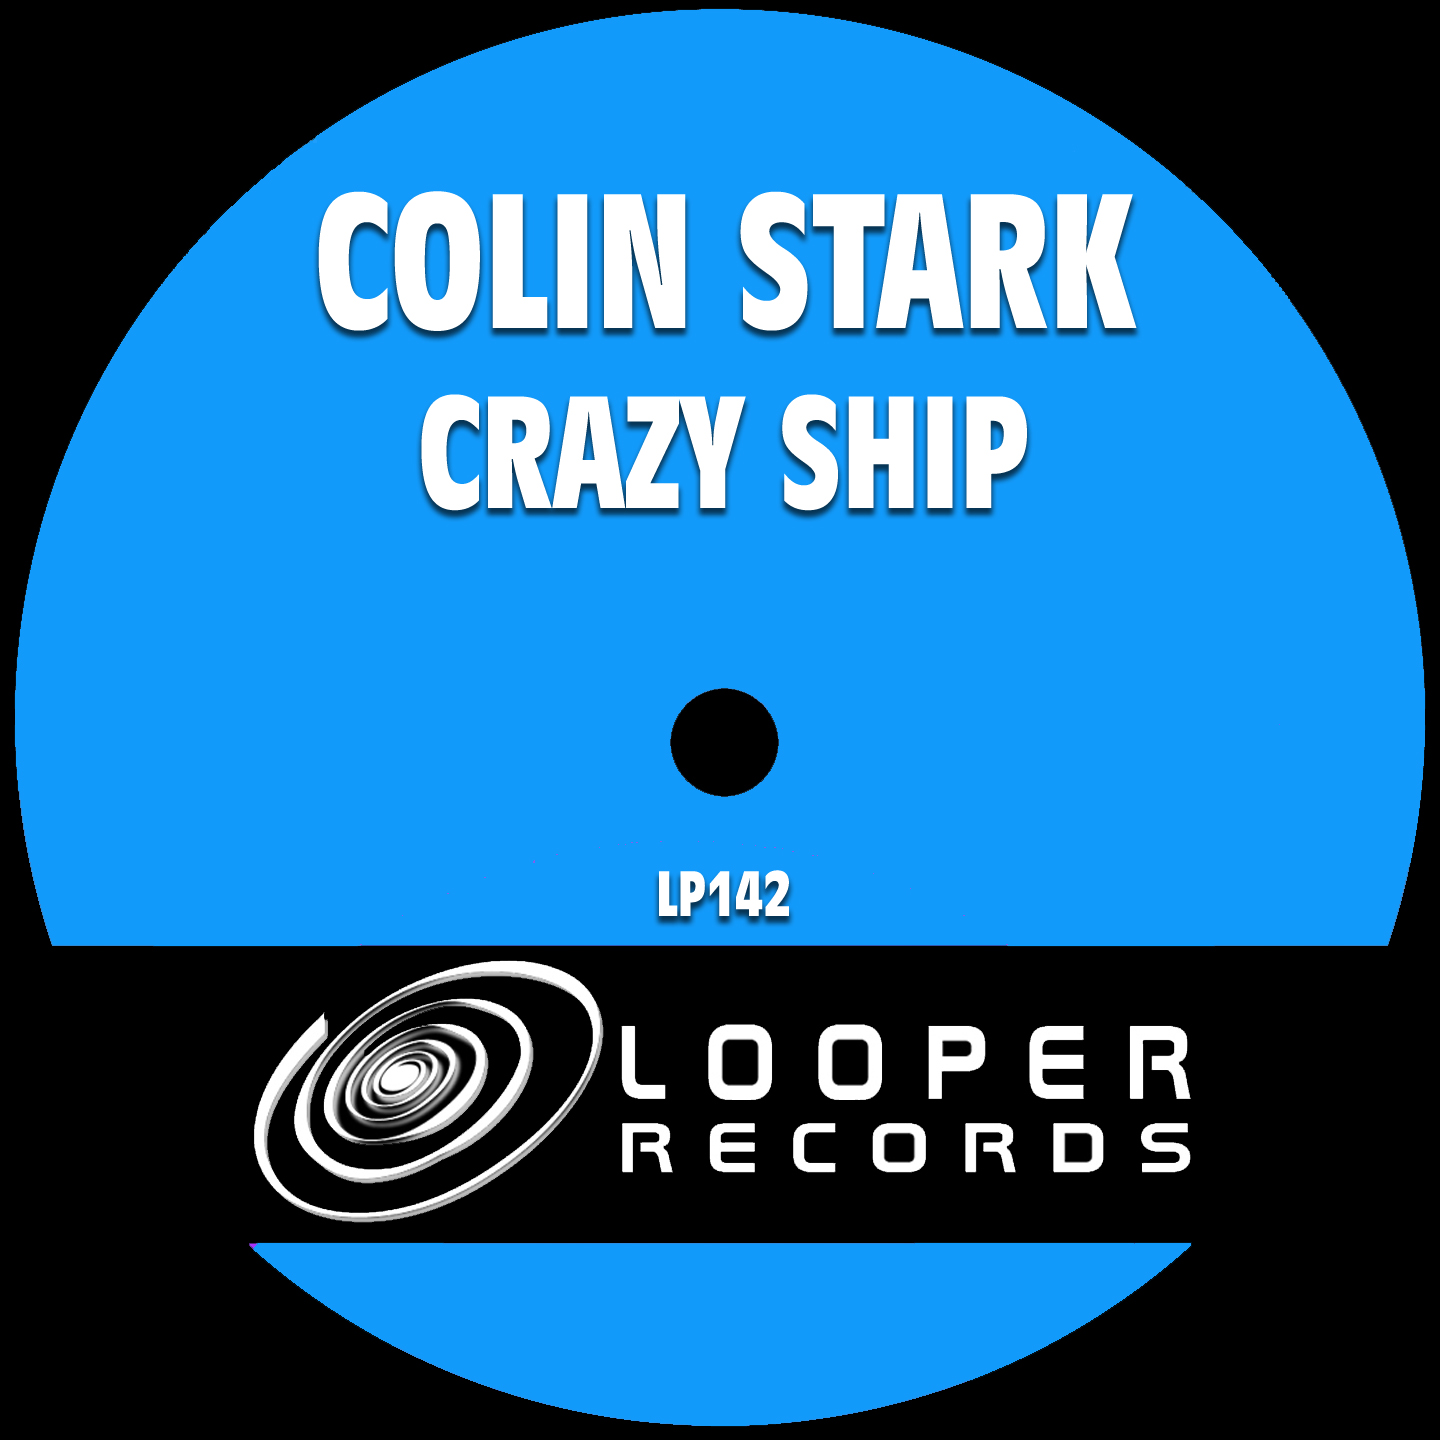 Crazy Ship - Lp142